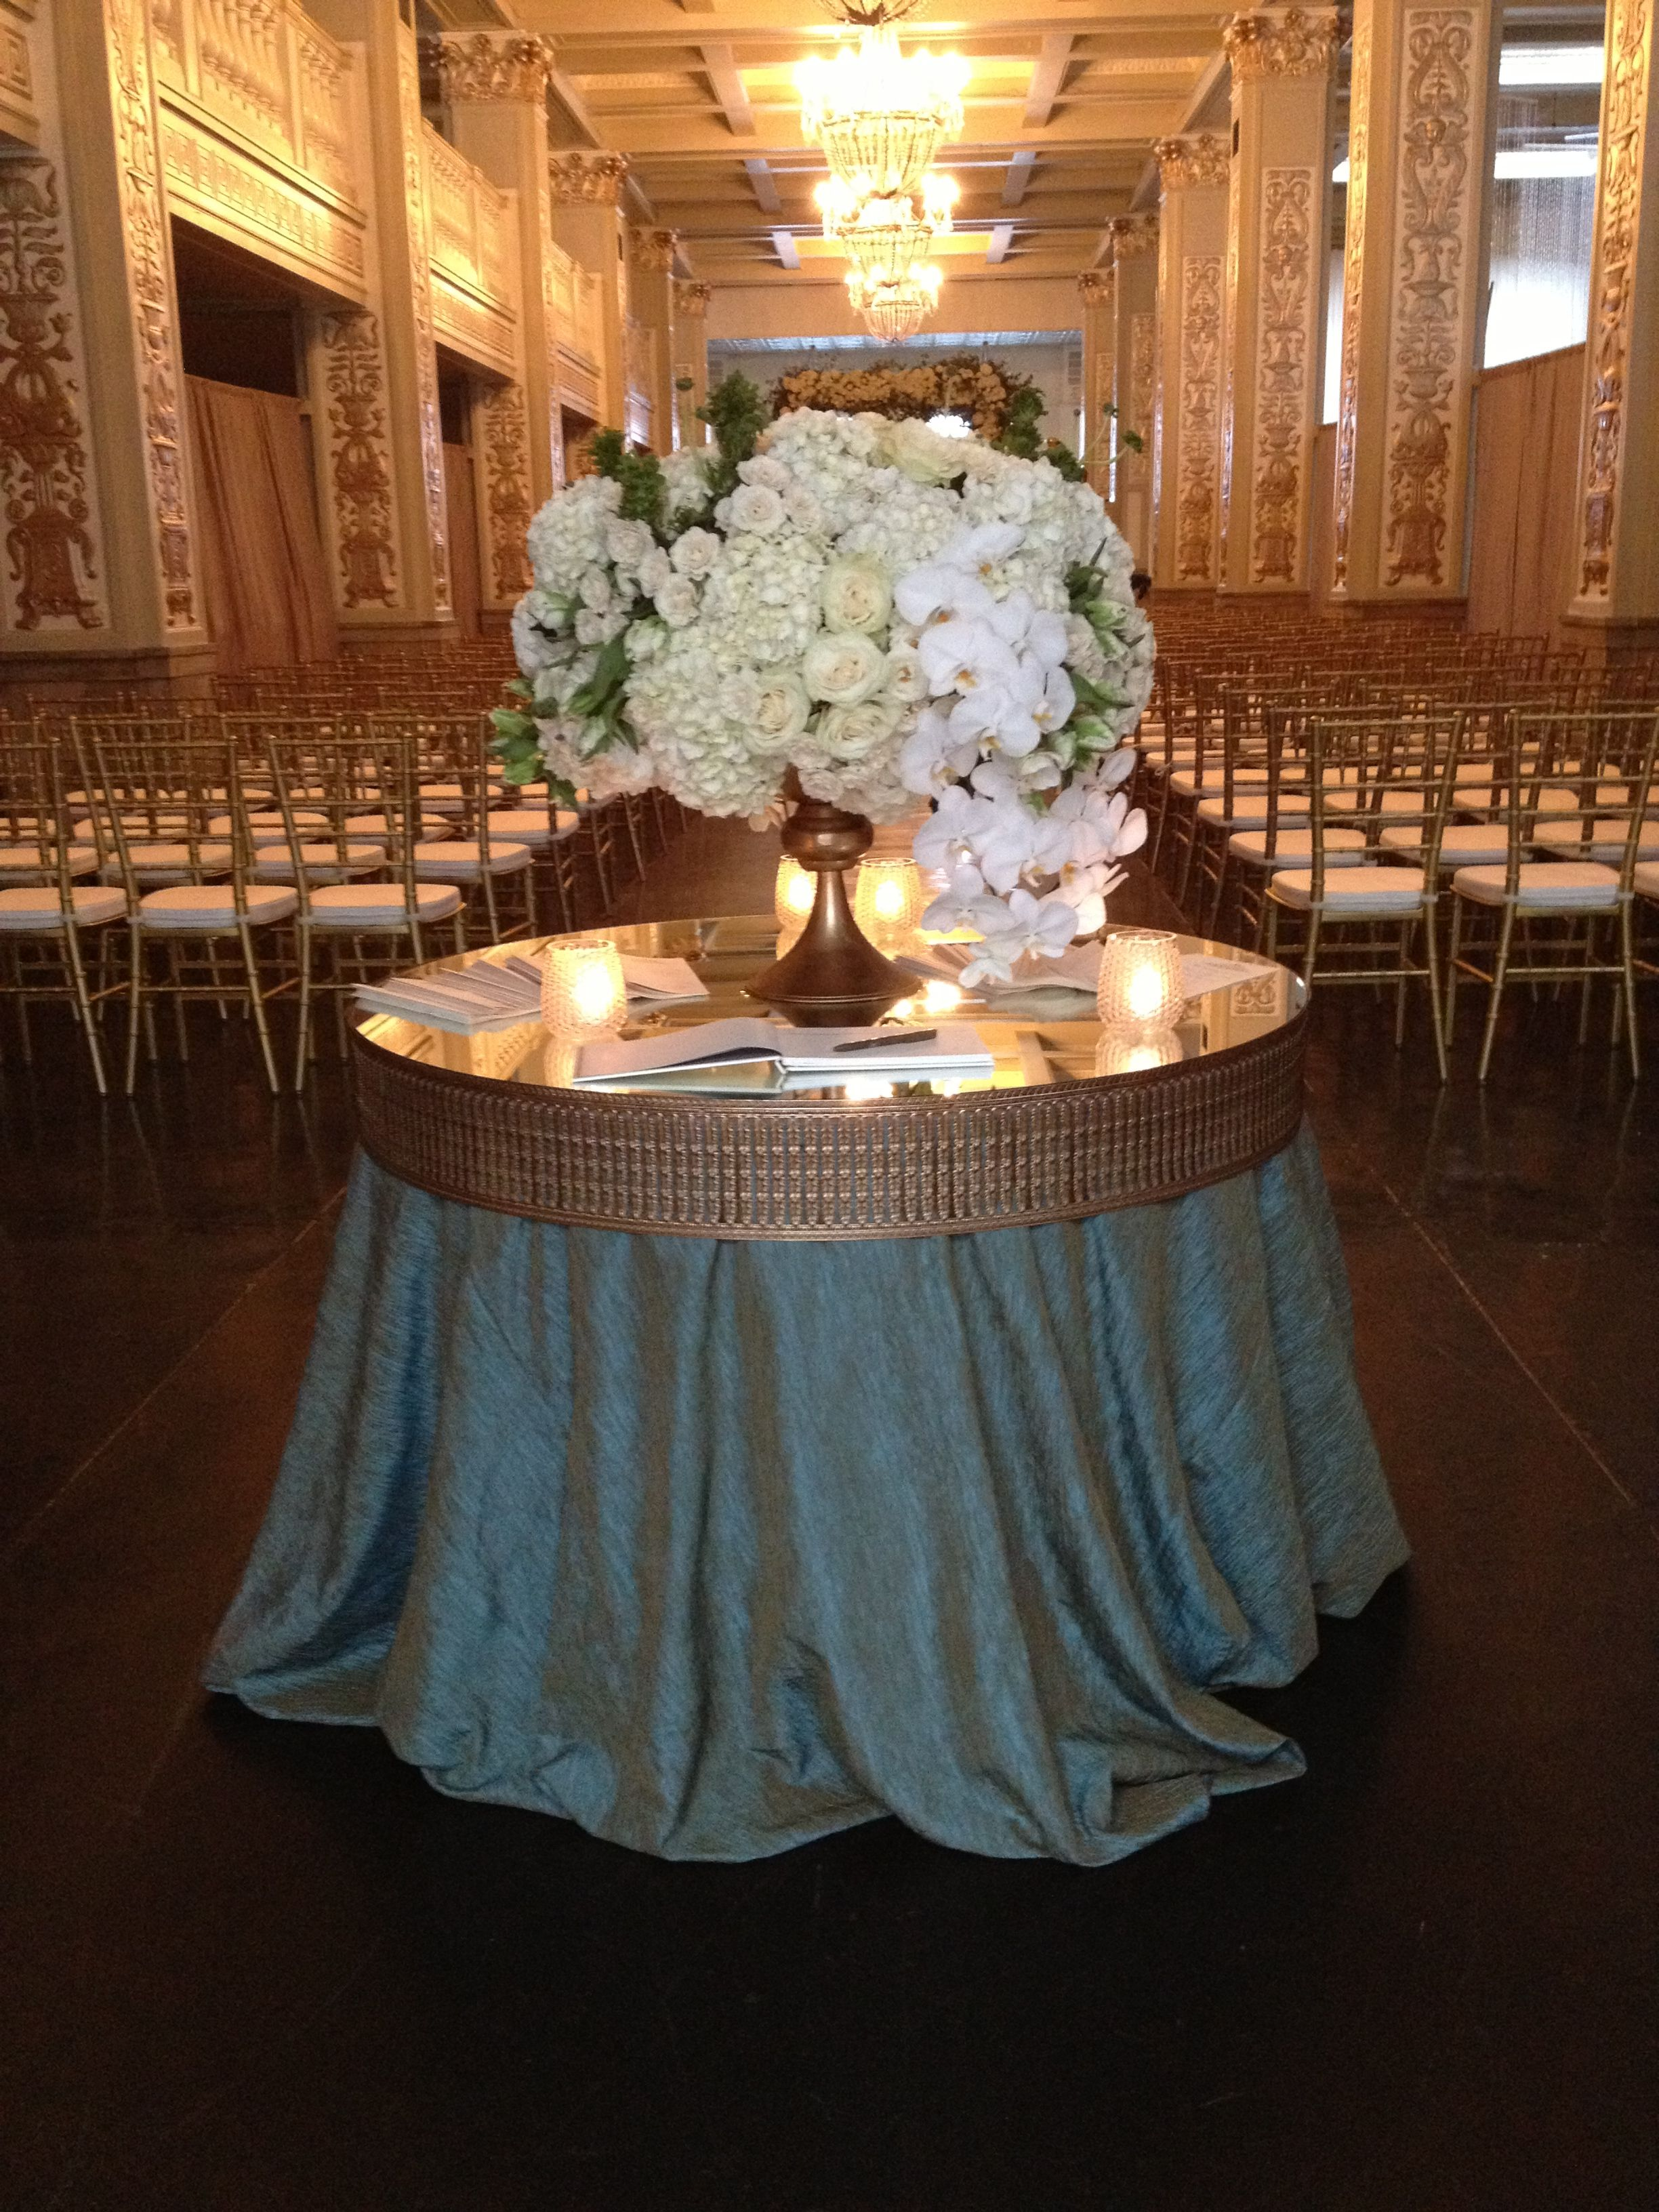 DeClerk Wray Designs created this amazing table top